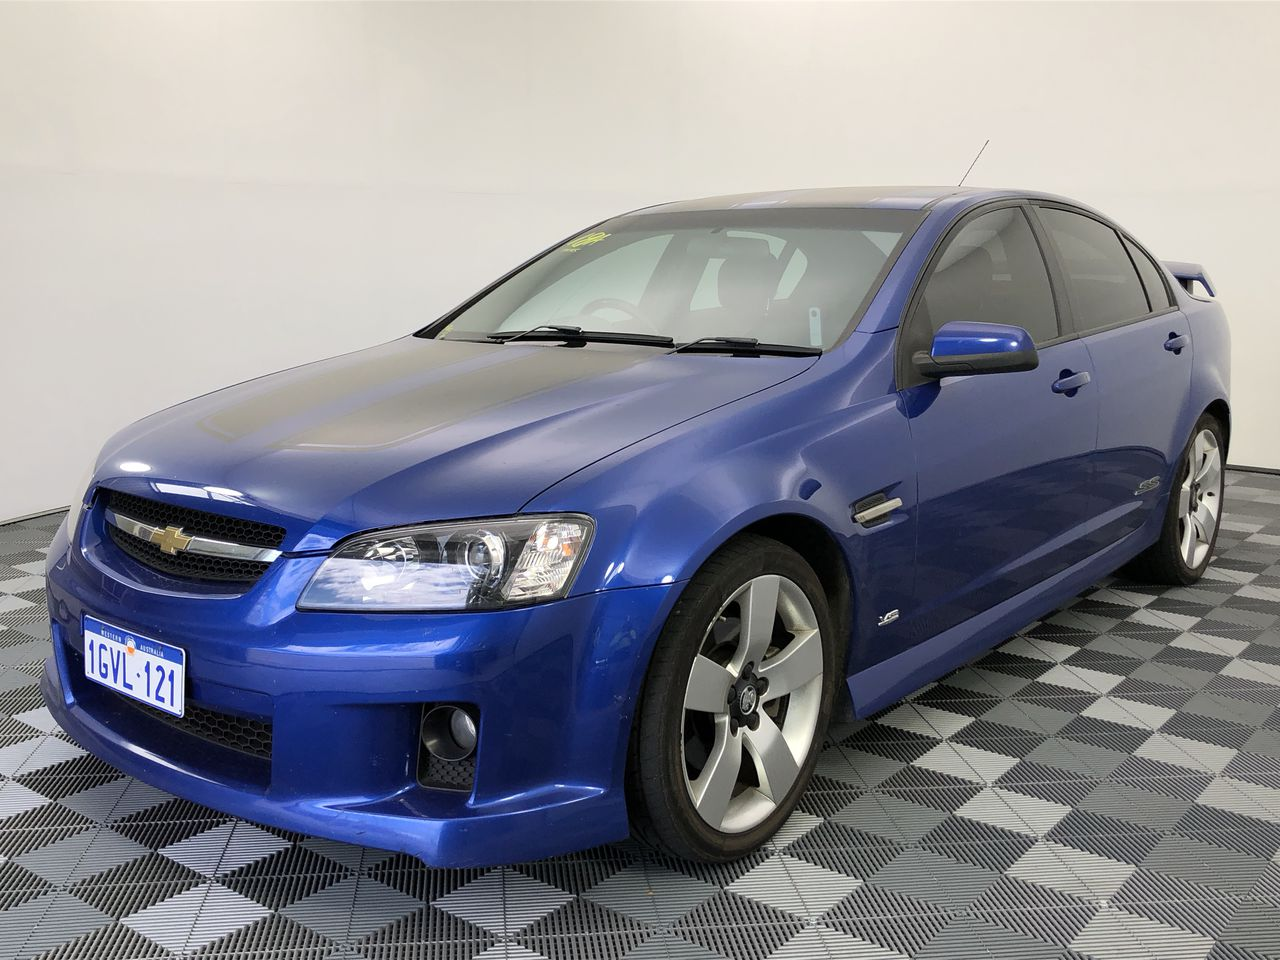 2006 Holden Commodore SS-V VE Automatic Sedan